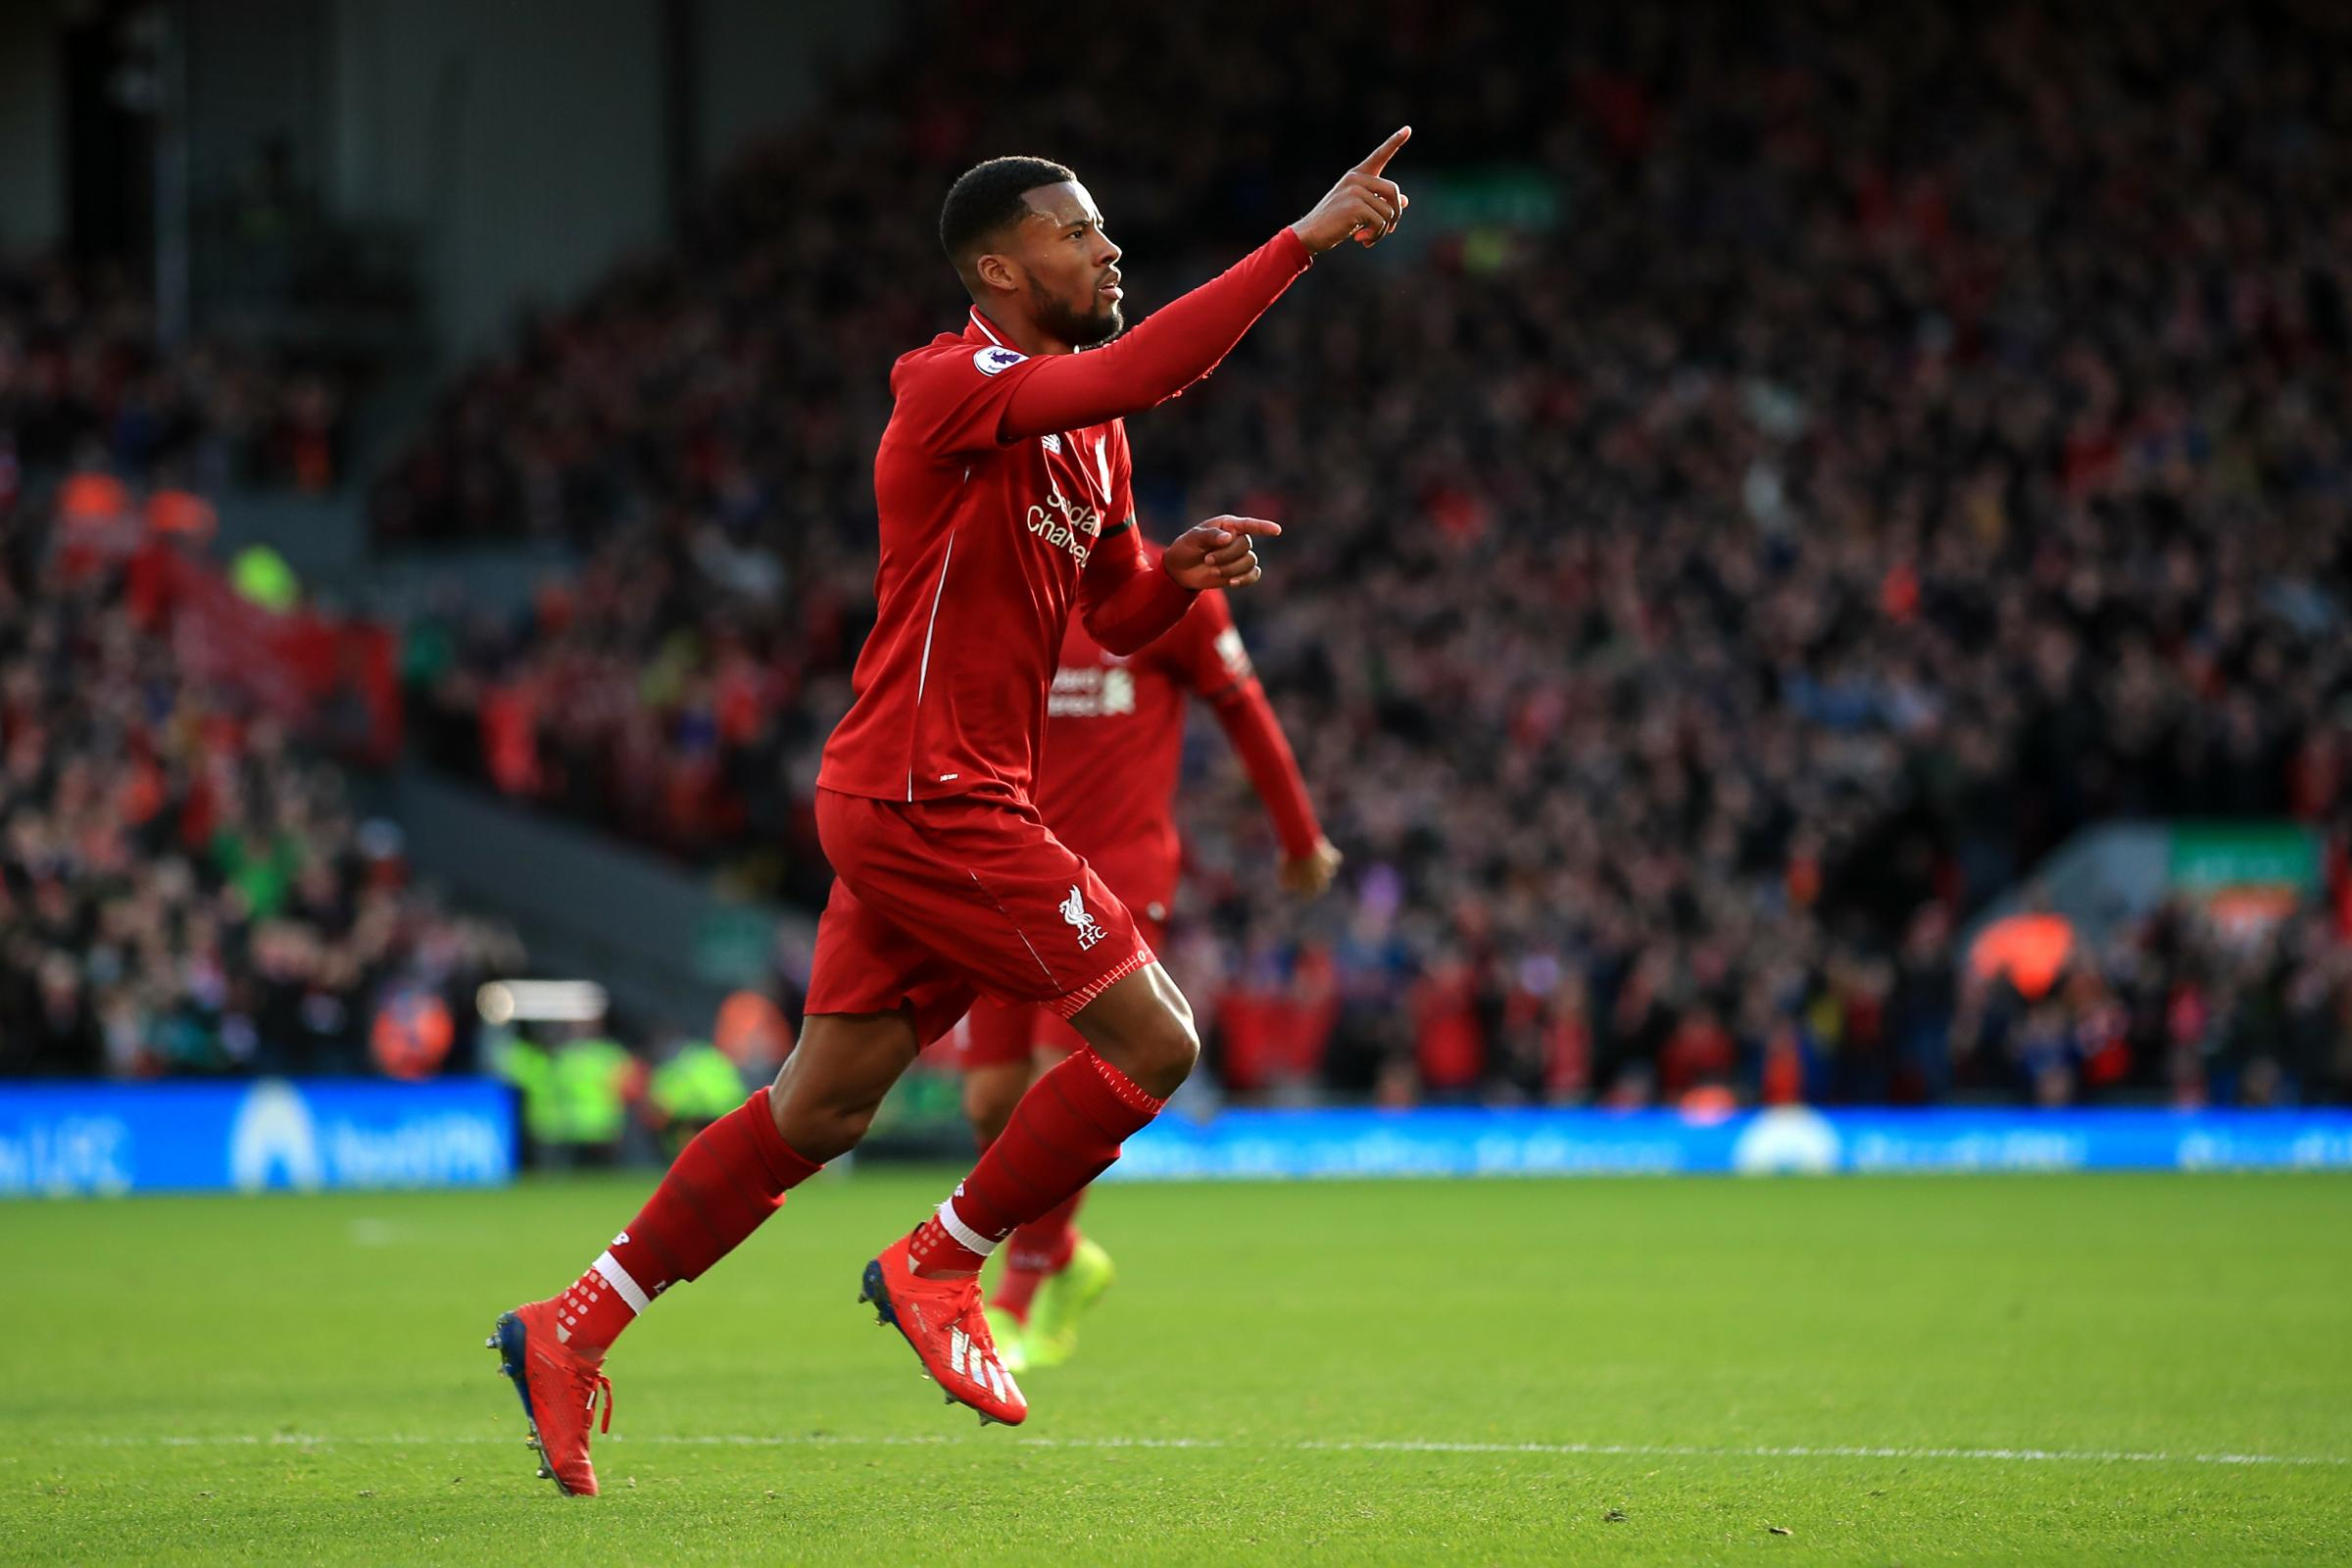 Liverpool midfielder Georginio Wijnaldum defied sickness to play a crucial role in the win over Bournemouth